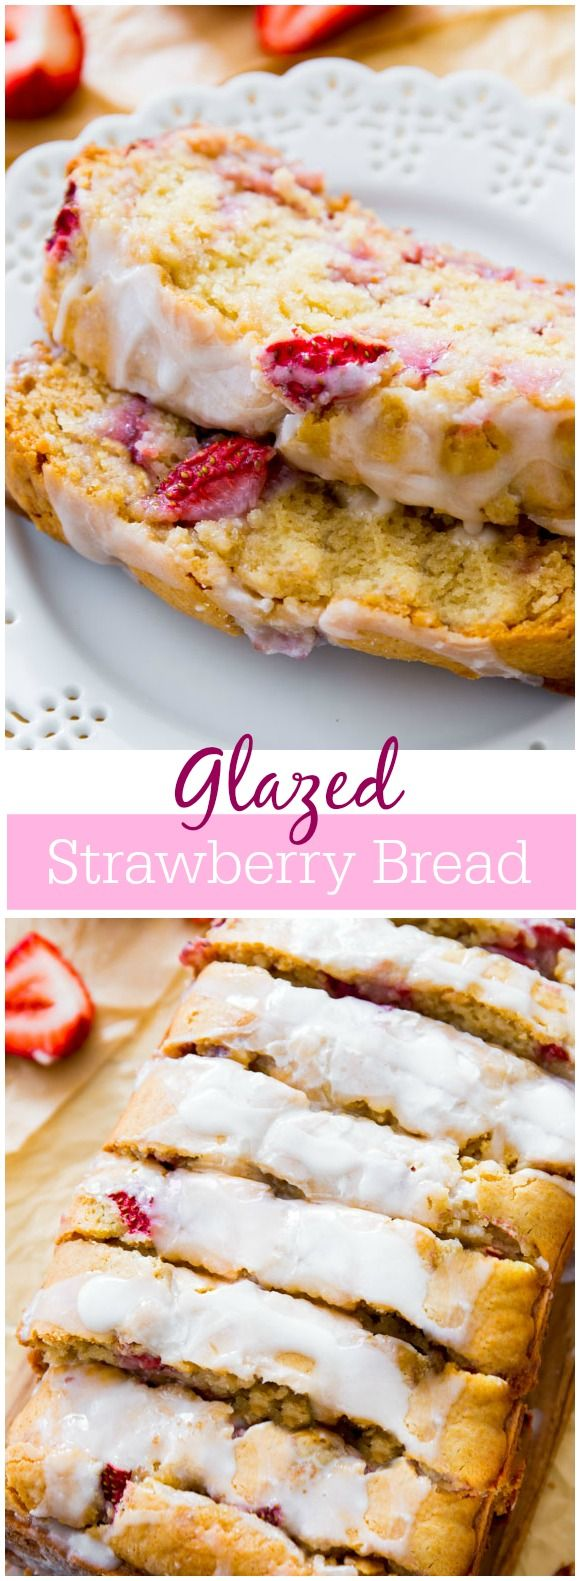 Glazed Strawberry Bread - It's so simple to make, you'll crave it year round!